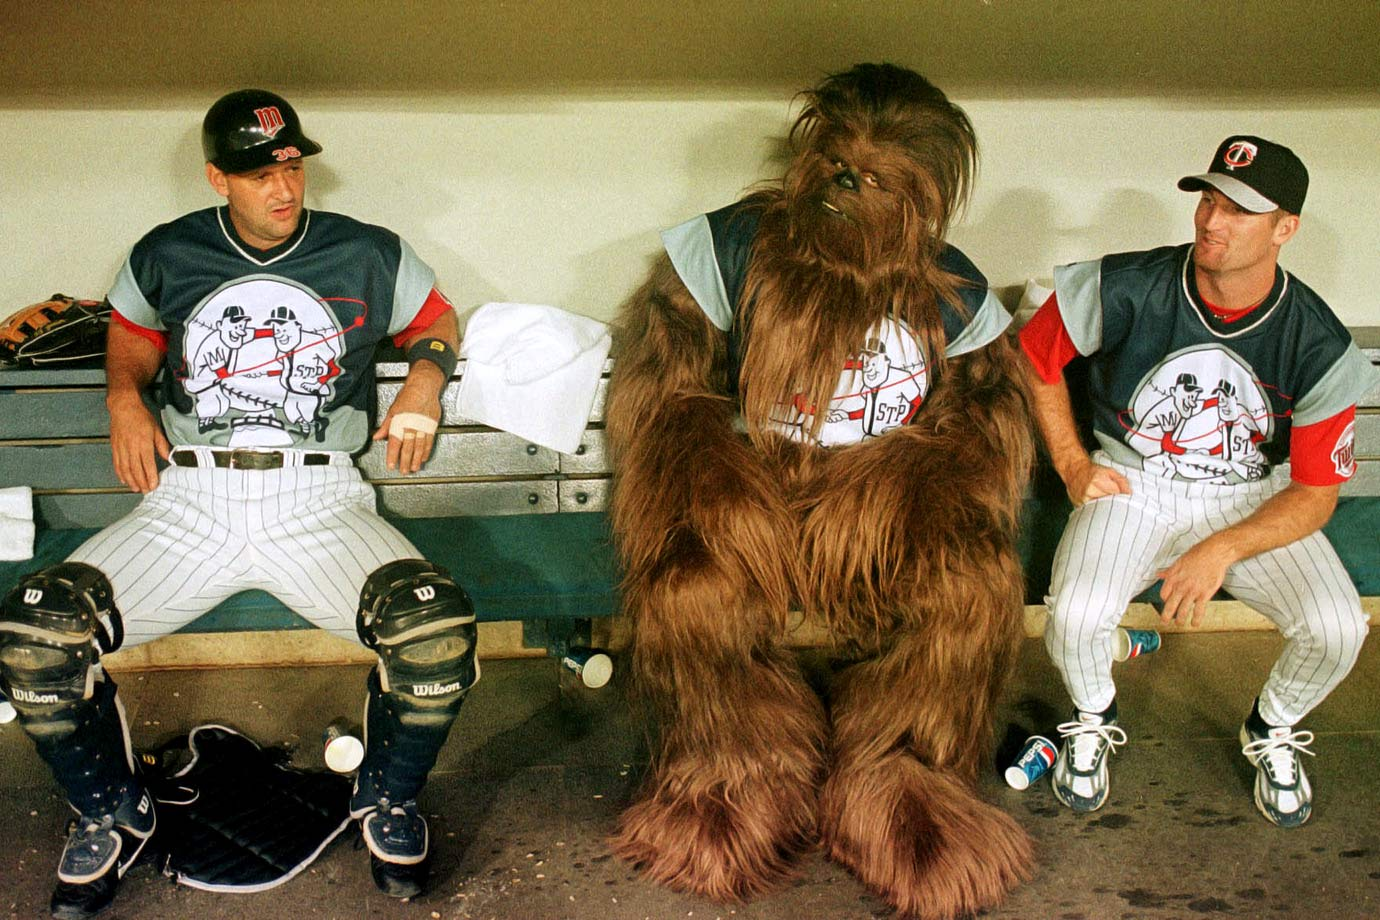 Minnesota Twins catcher Terry Steinbach and pitcher Joe Mays share the bench with the Twins newest Wookie prior to their game with the Seattle Mariners on July 24, 1999 at the Hubert H. Humphrey Metrodome in Minneapolis, Minn.